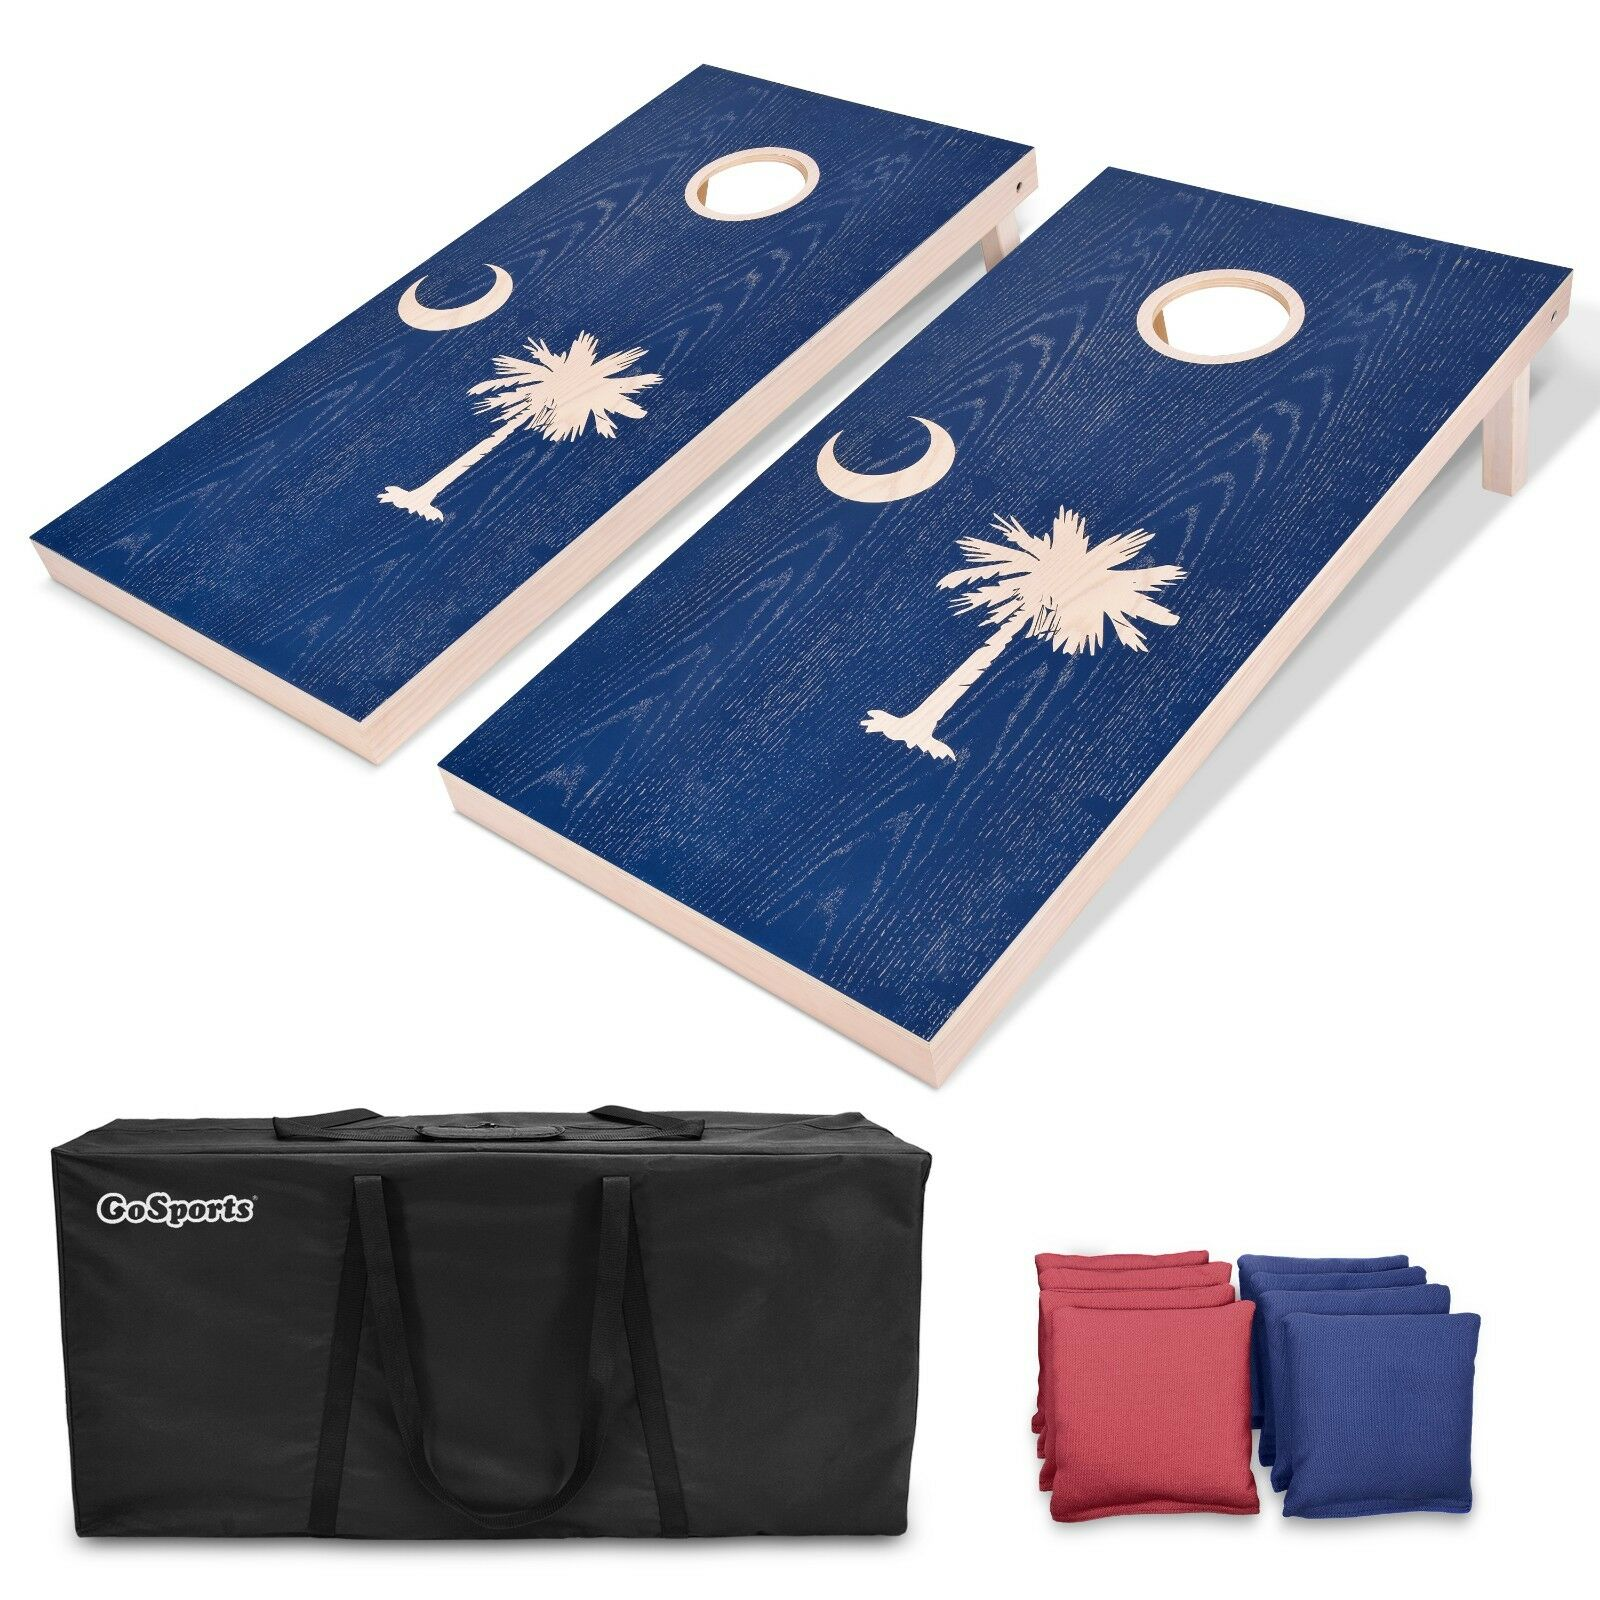 GoSports South Carolina Regulation Size 4'x2' Solid Wood Cornhole Set